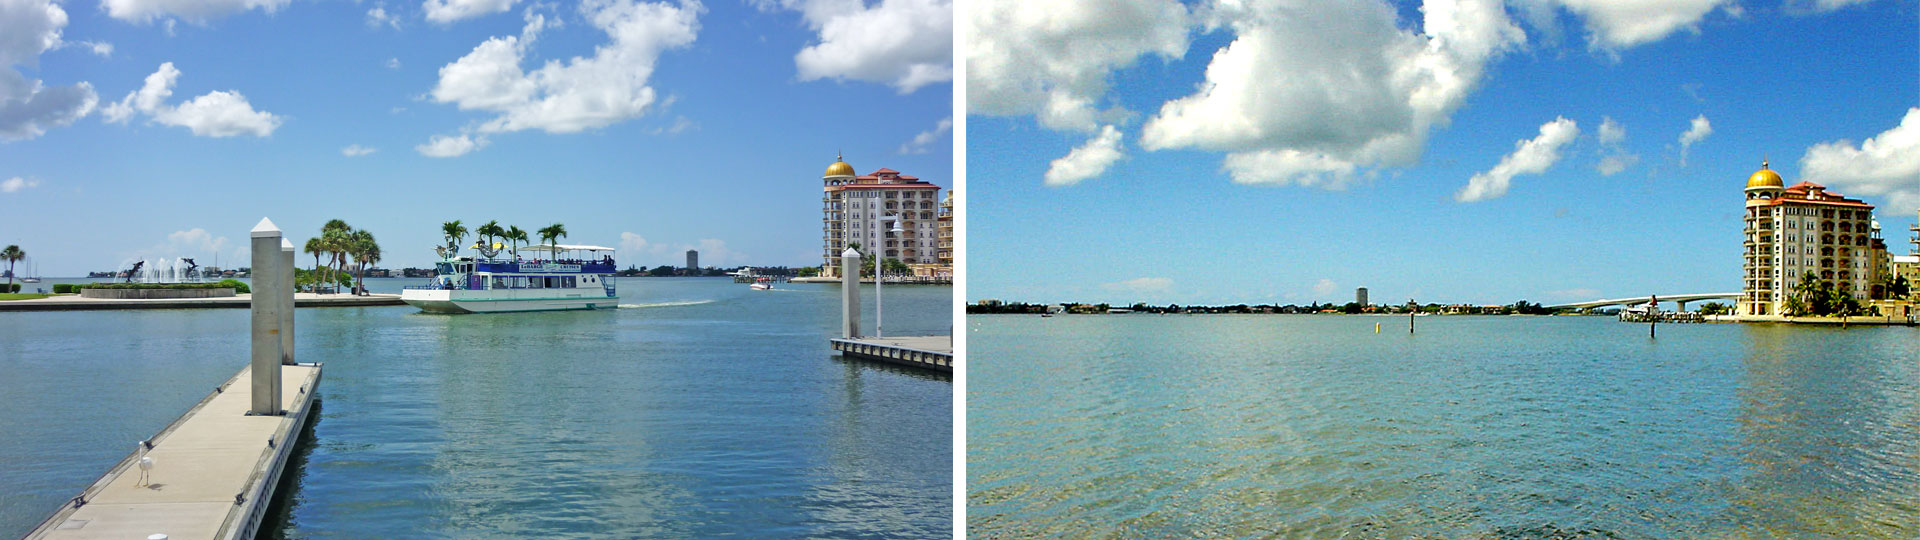 Two views from Marina Jack